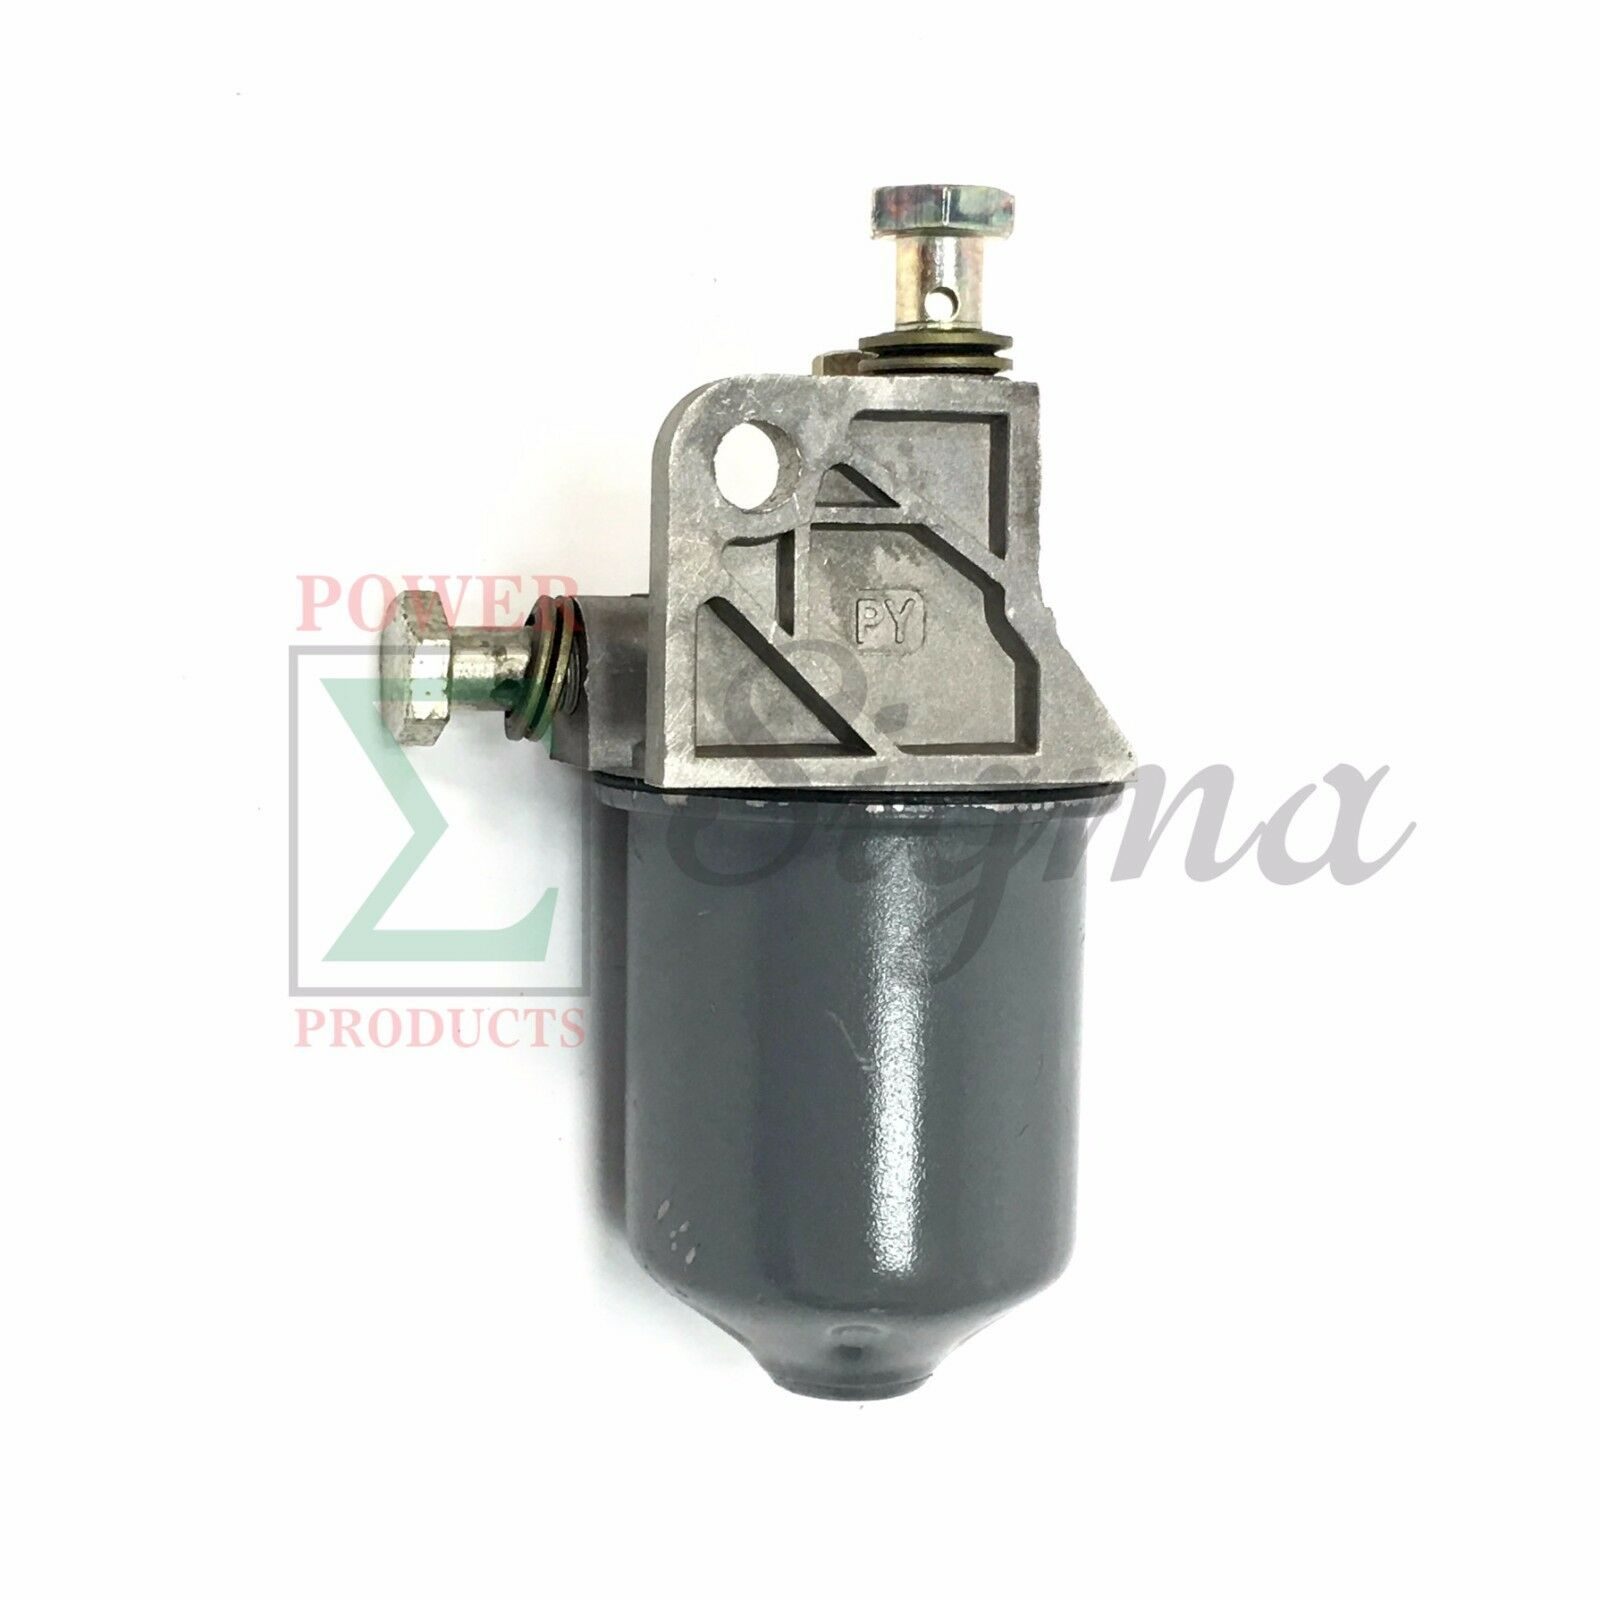 New Fuel Filter Assembly C0506 For 186F 10HP Chinese & Yanmar Diesel Engine  L100